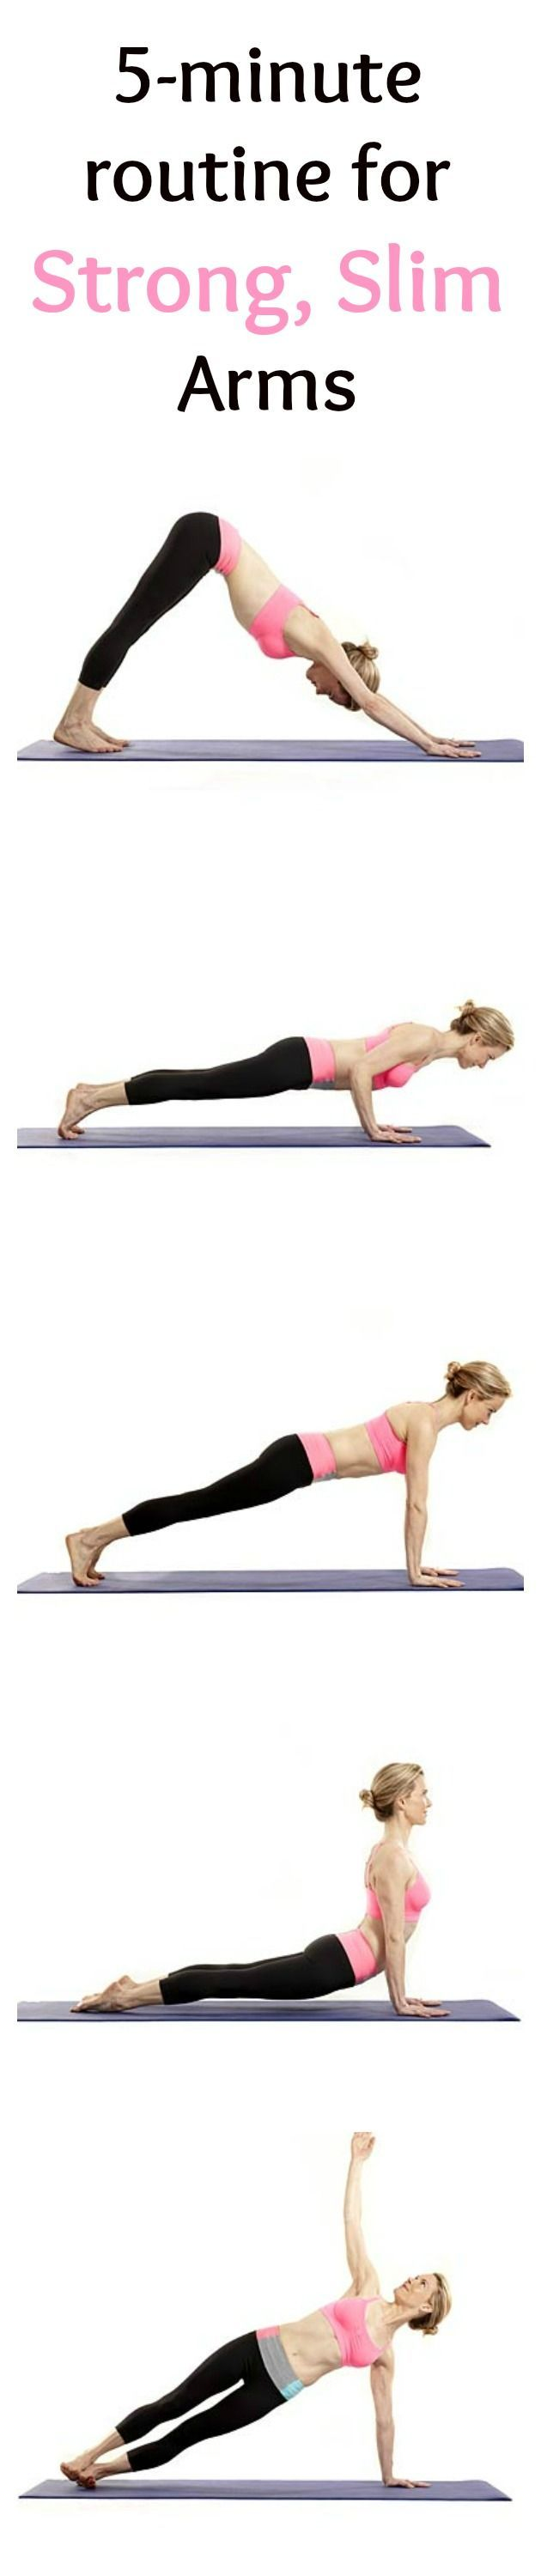 It's tank top season! Get strong, slim arms with this 5-minute yoga routine.